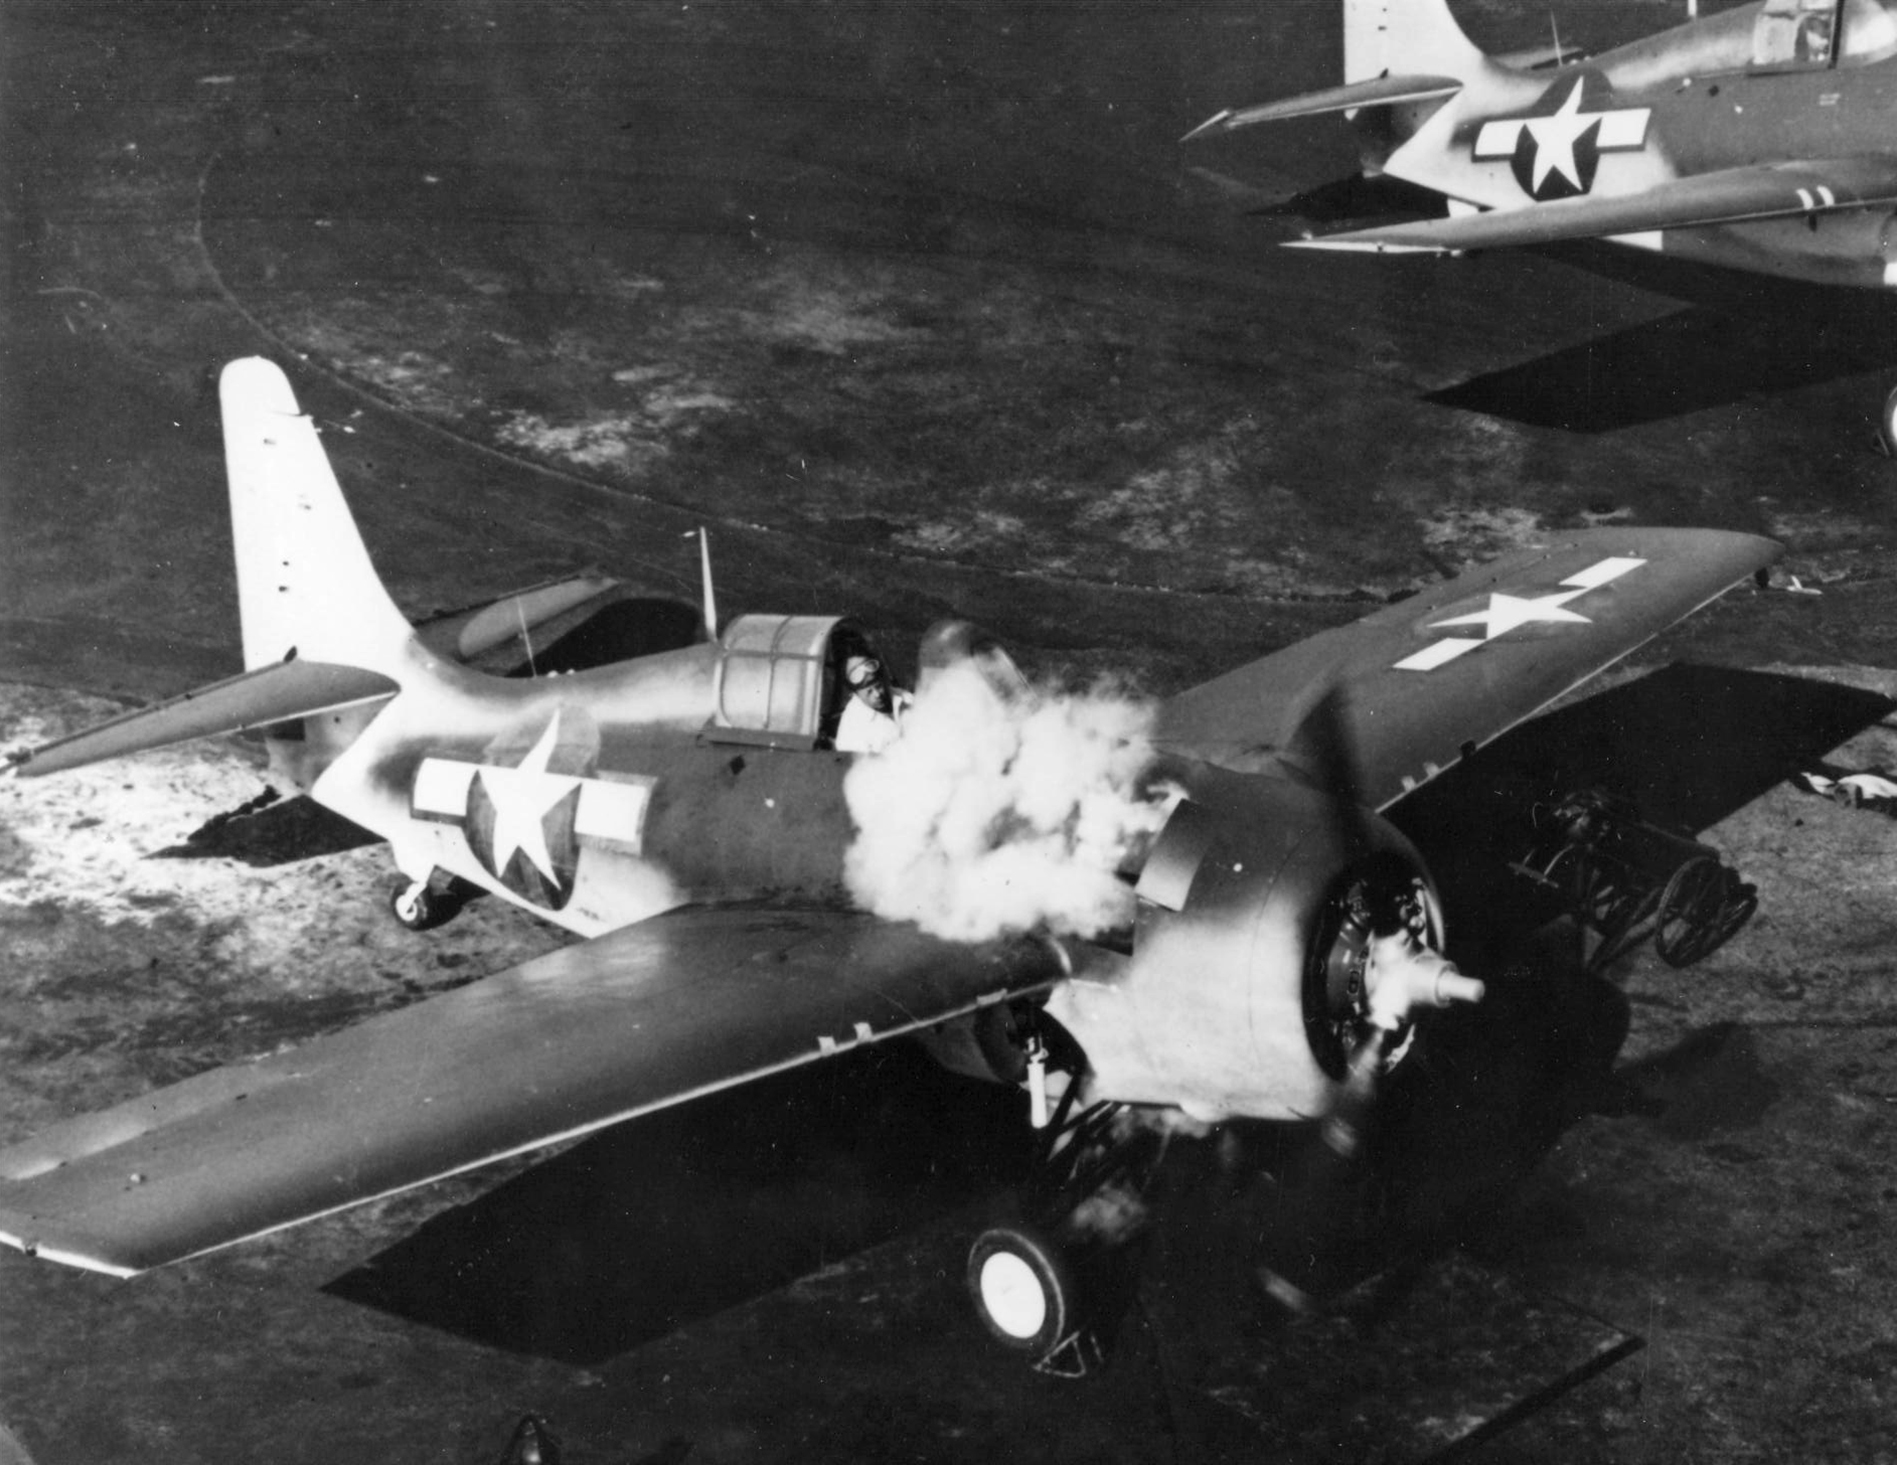 FM 2 Wildcat with engine fire always a major concern 01